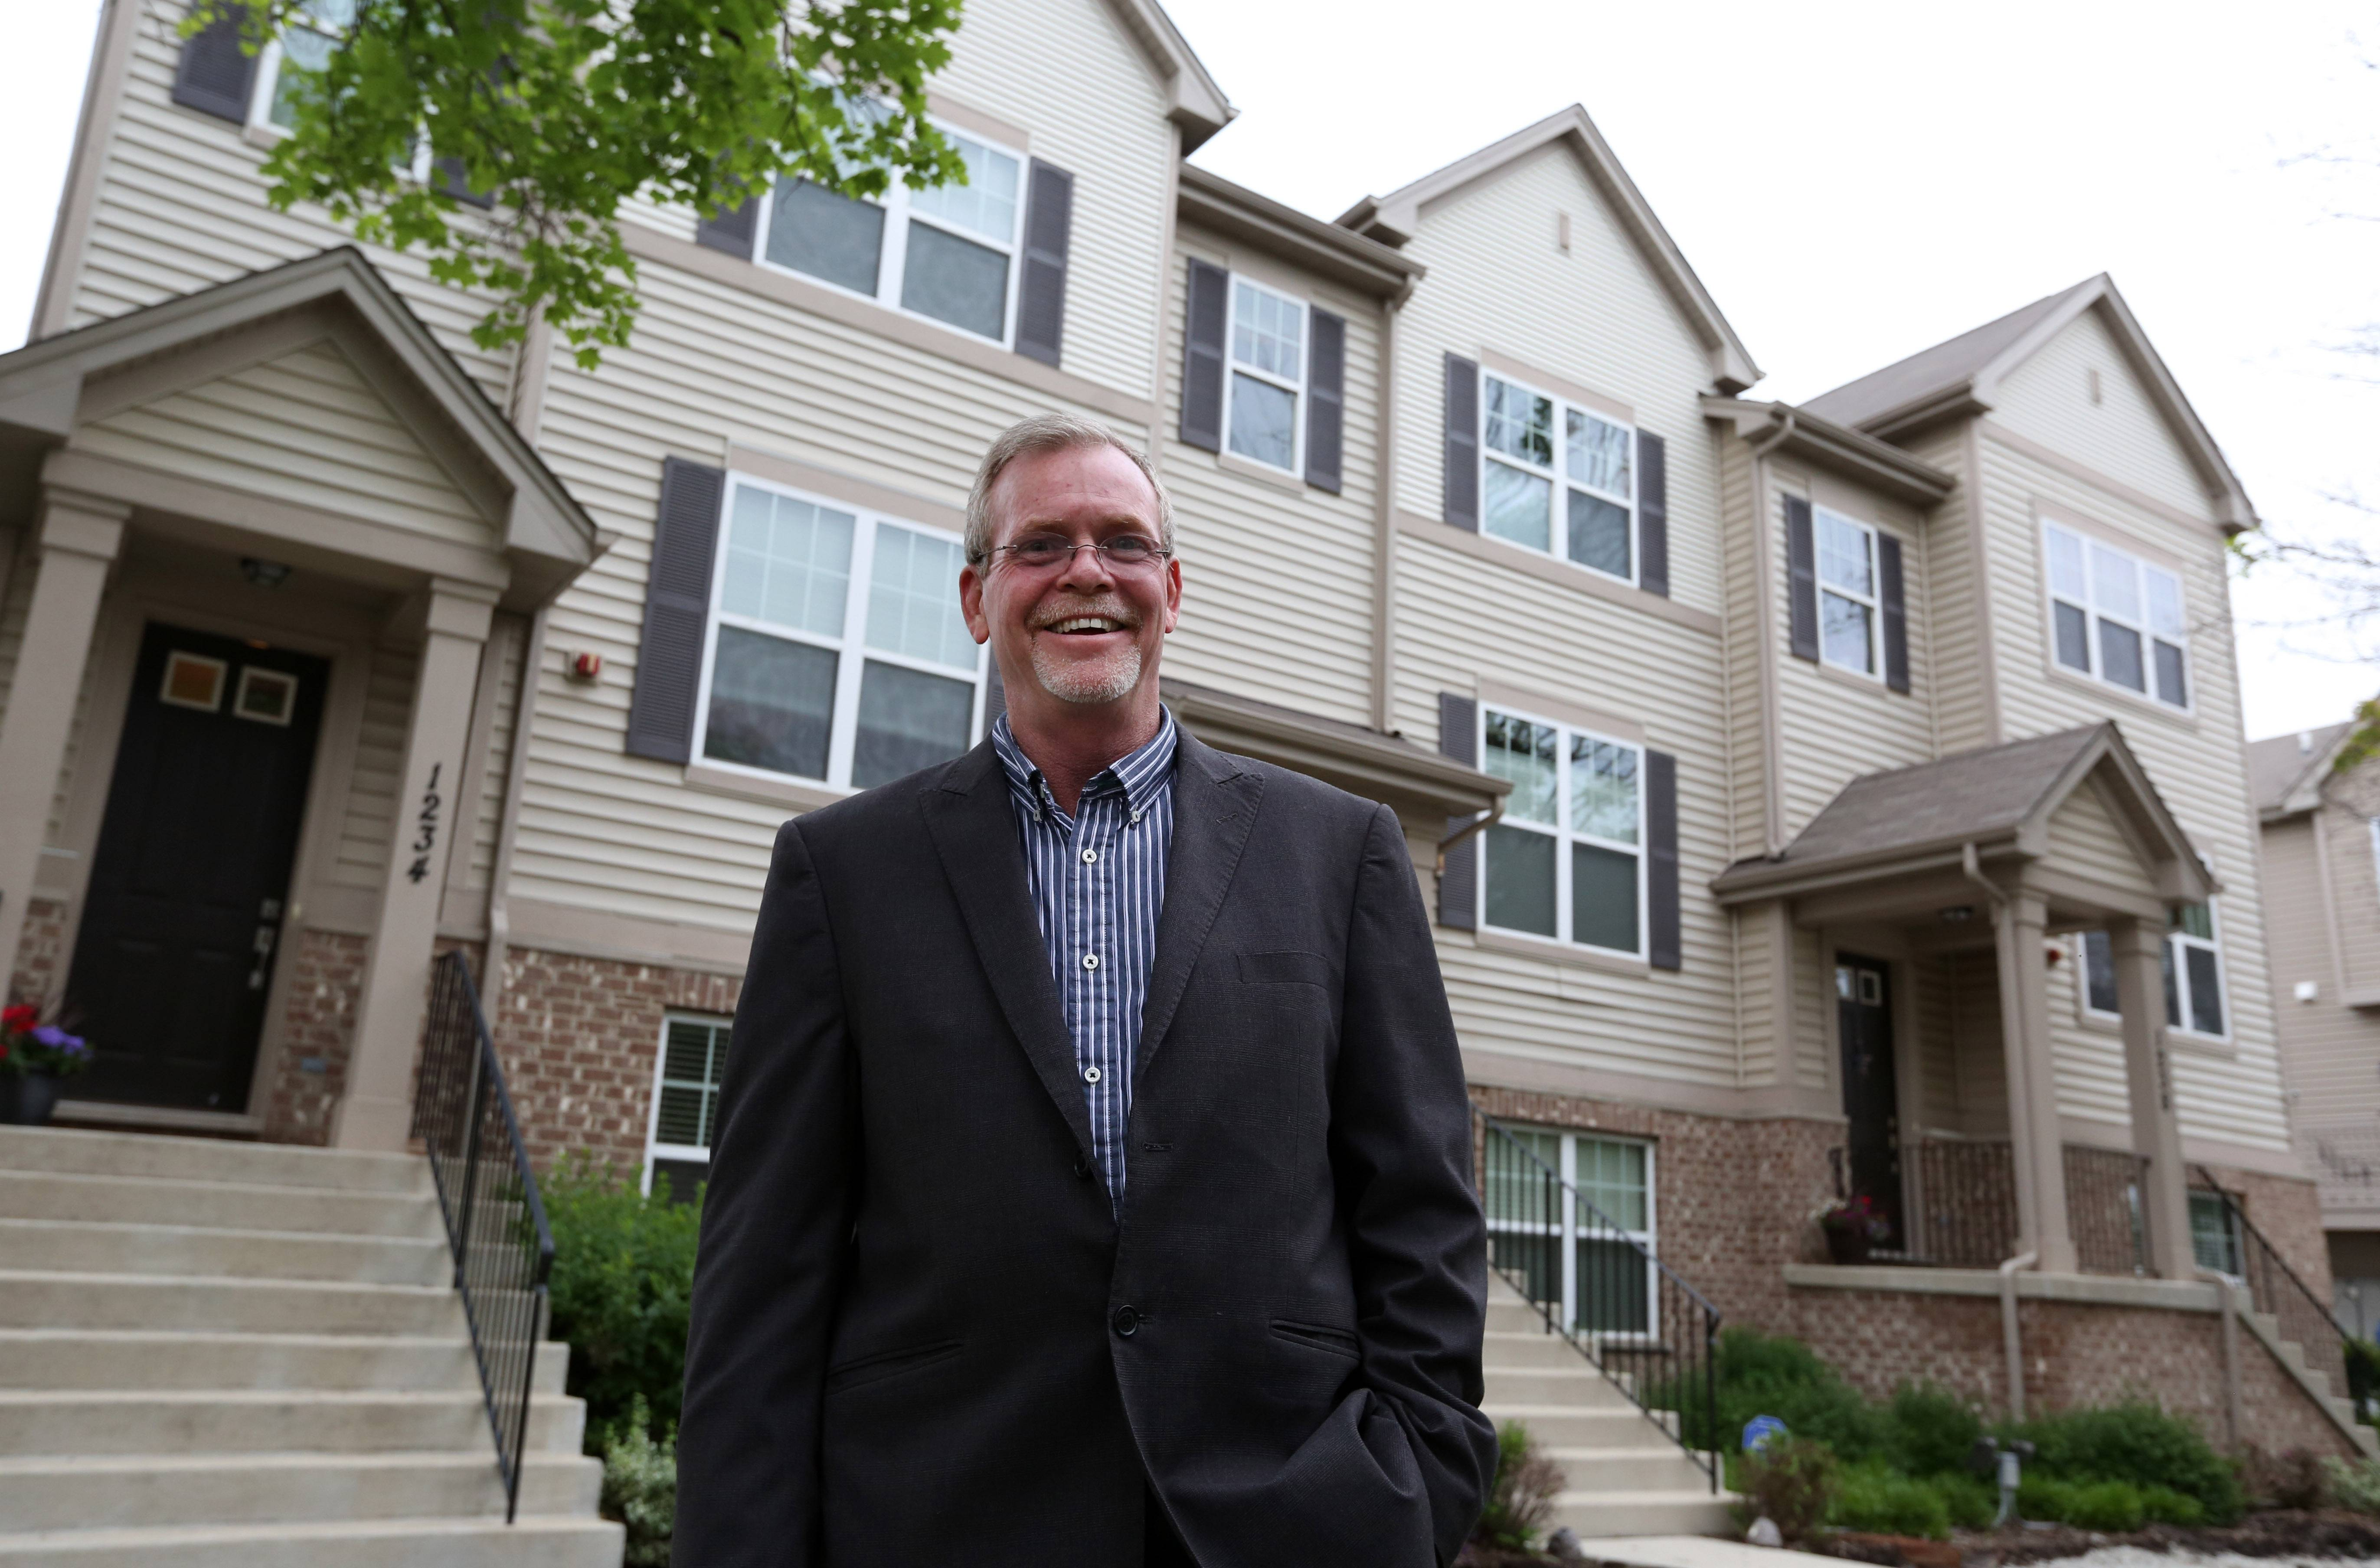 Bill McPartlin has purchased fixer-uppers in the past, but he recently bought a move-in ready townhouse in Des Plaines from Lexington Homes.